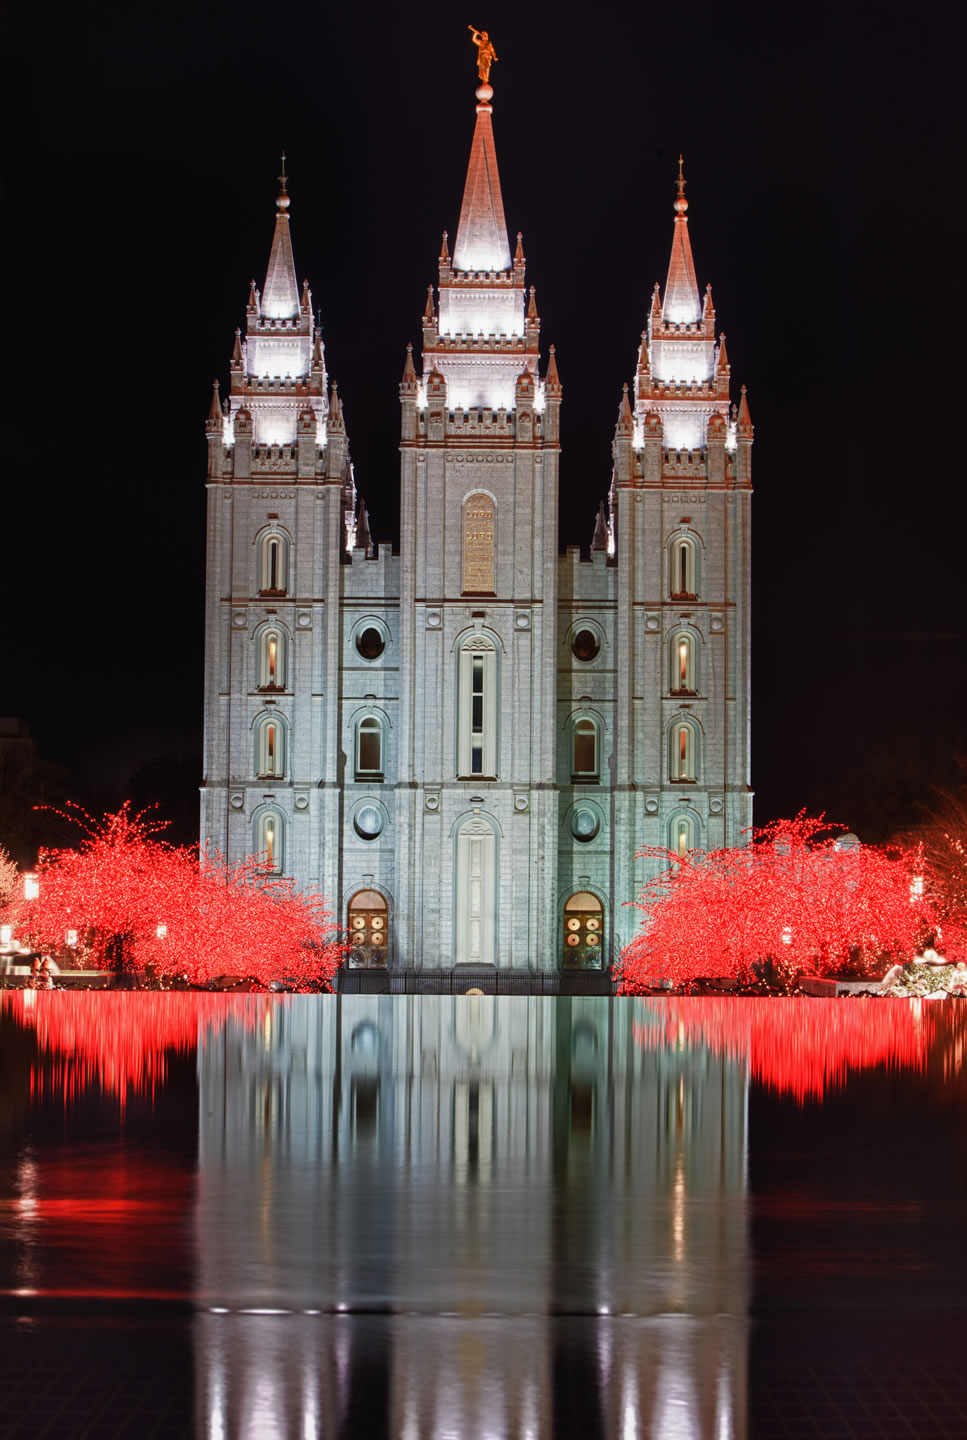 Salt Lake Temple reflects in the water